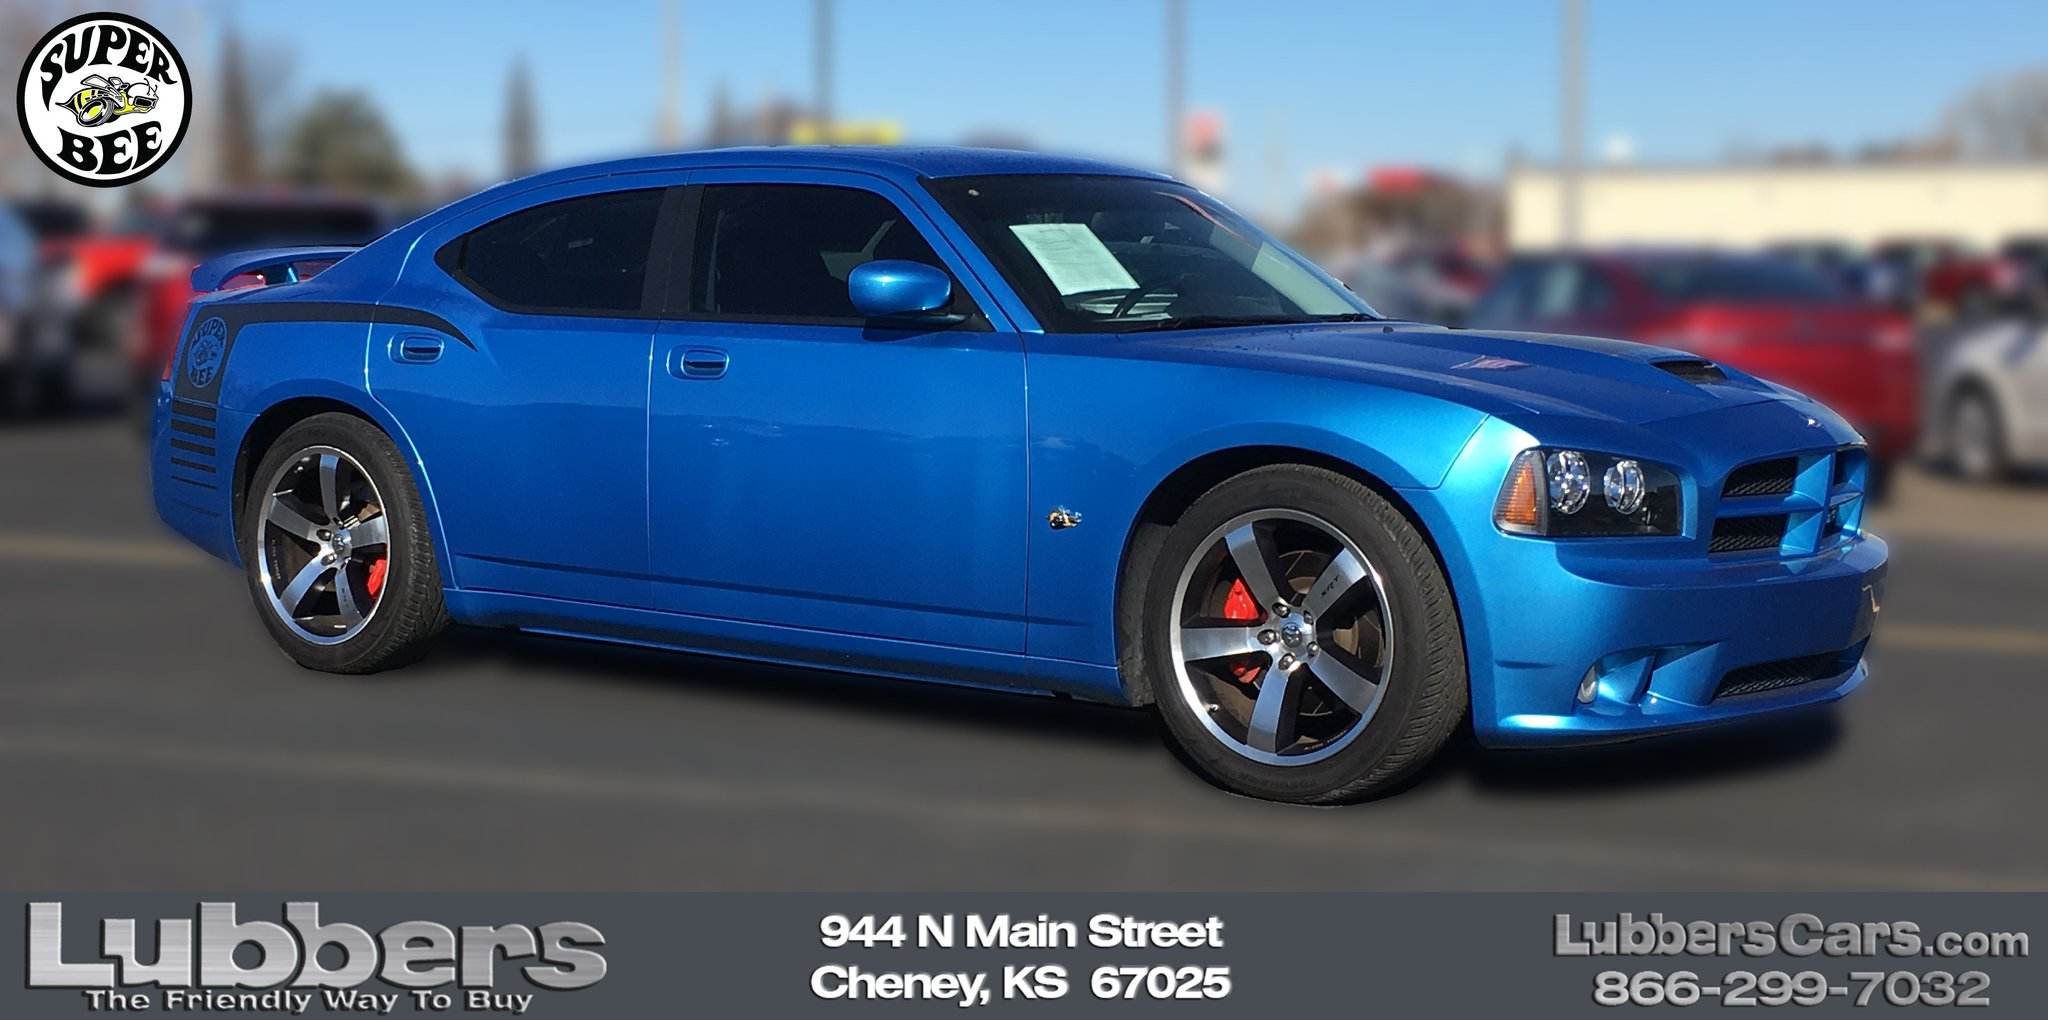 Lubbers Cheney Ks >> Lubbers Cars On Twitter Bzzzz 08 Dodge Charger Super Bee Alert